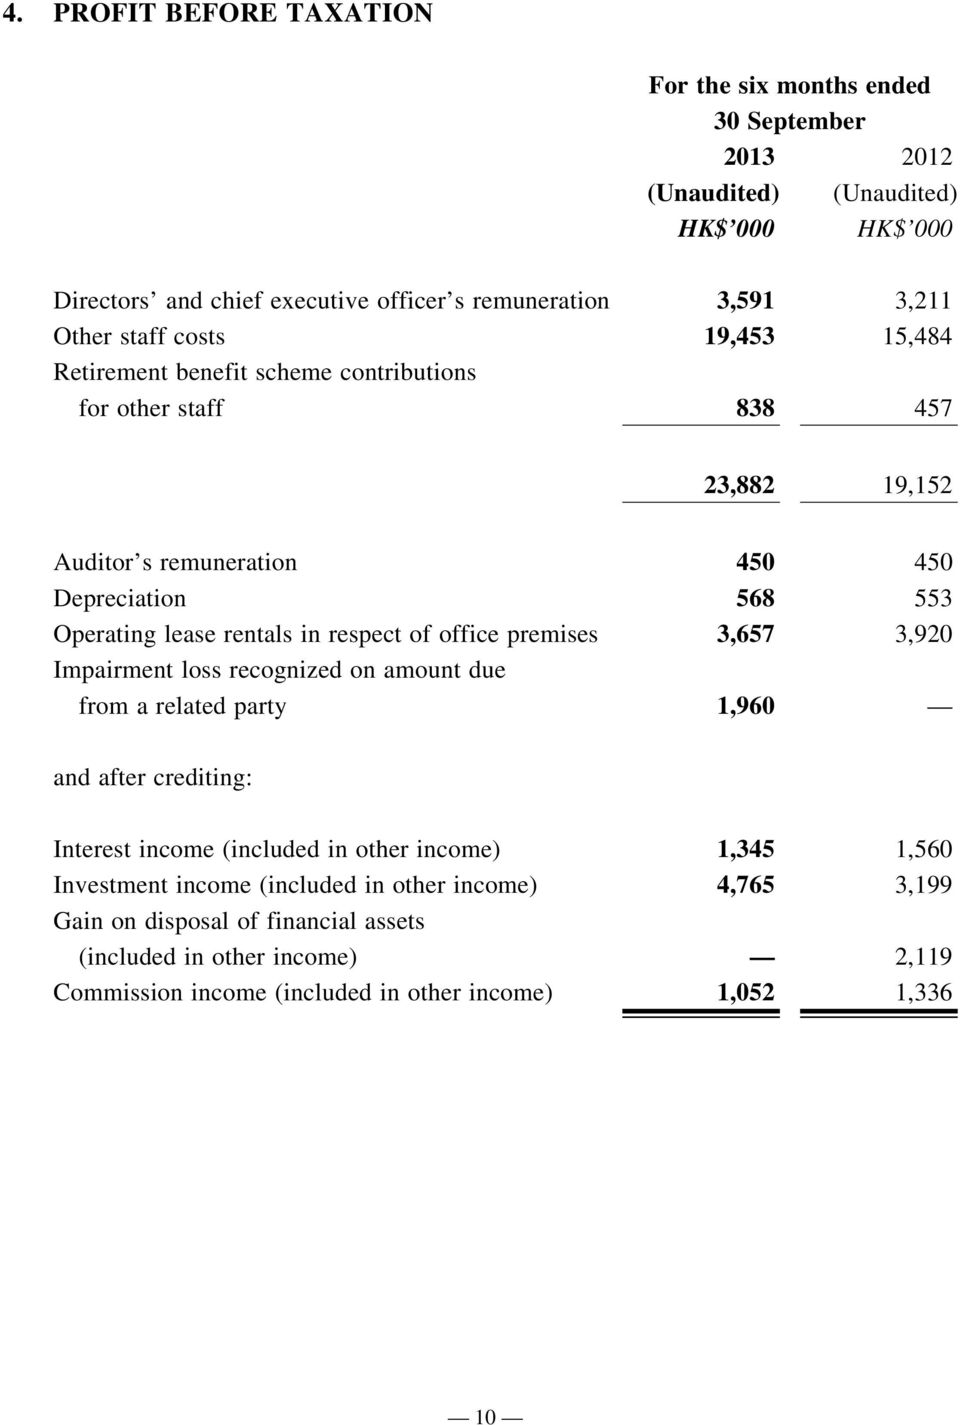 respect of office premises 3,657 3,920 Impairment loss recognized on amount due from a related party 1,960 and after crediting: Interest income (included in other income) 1,345 1,560